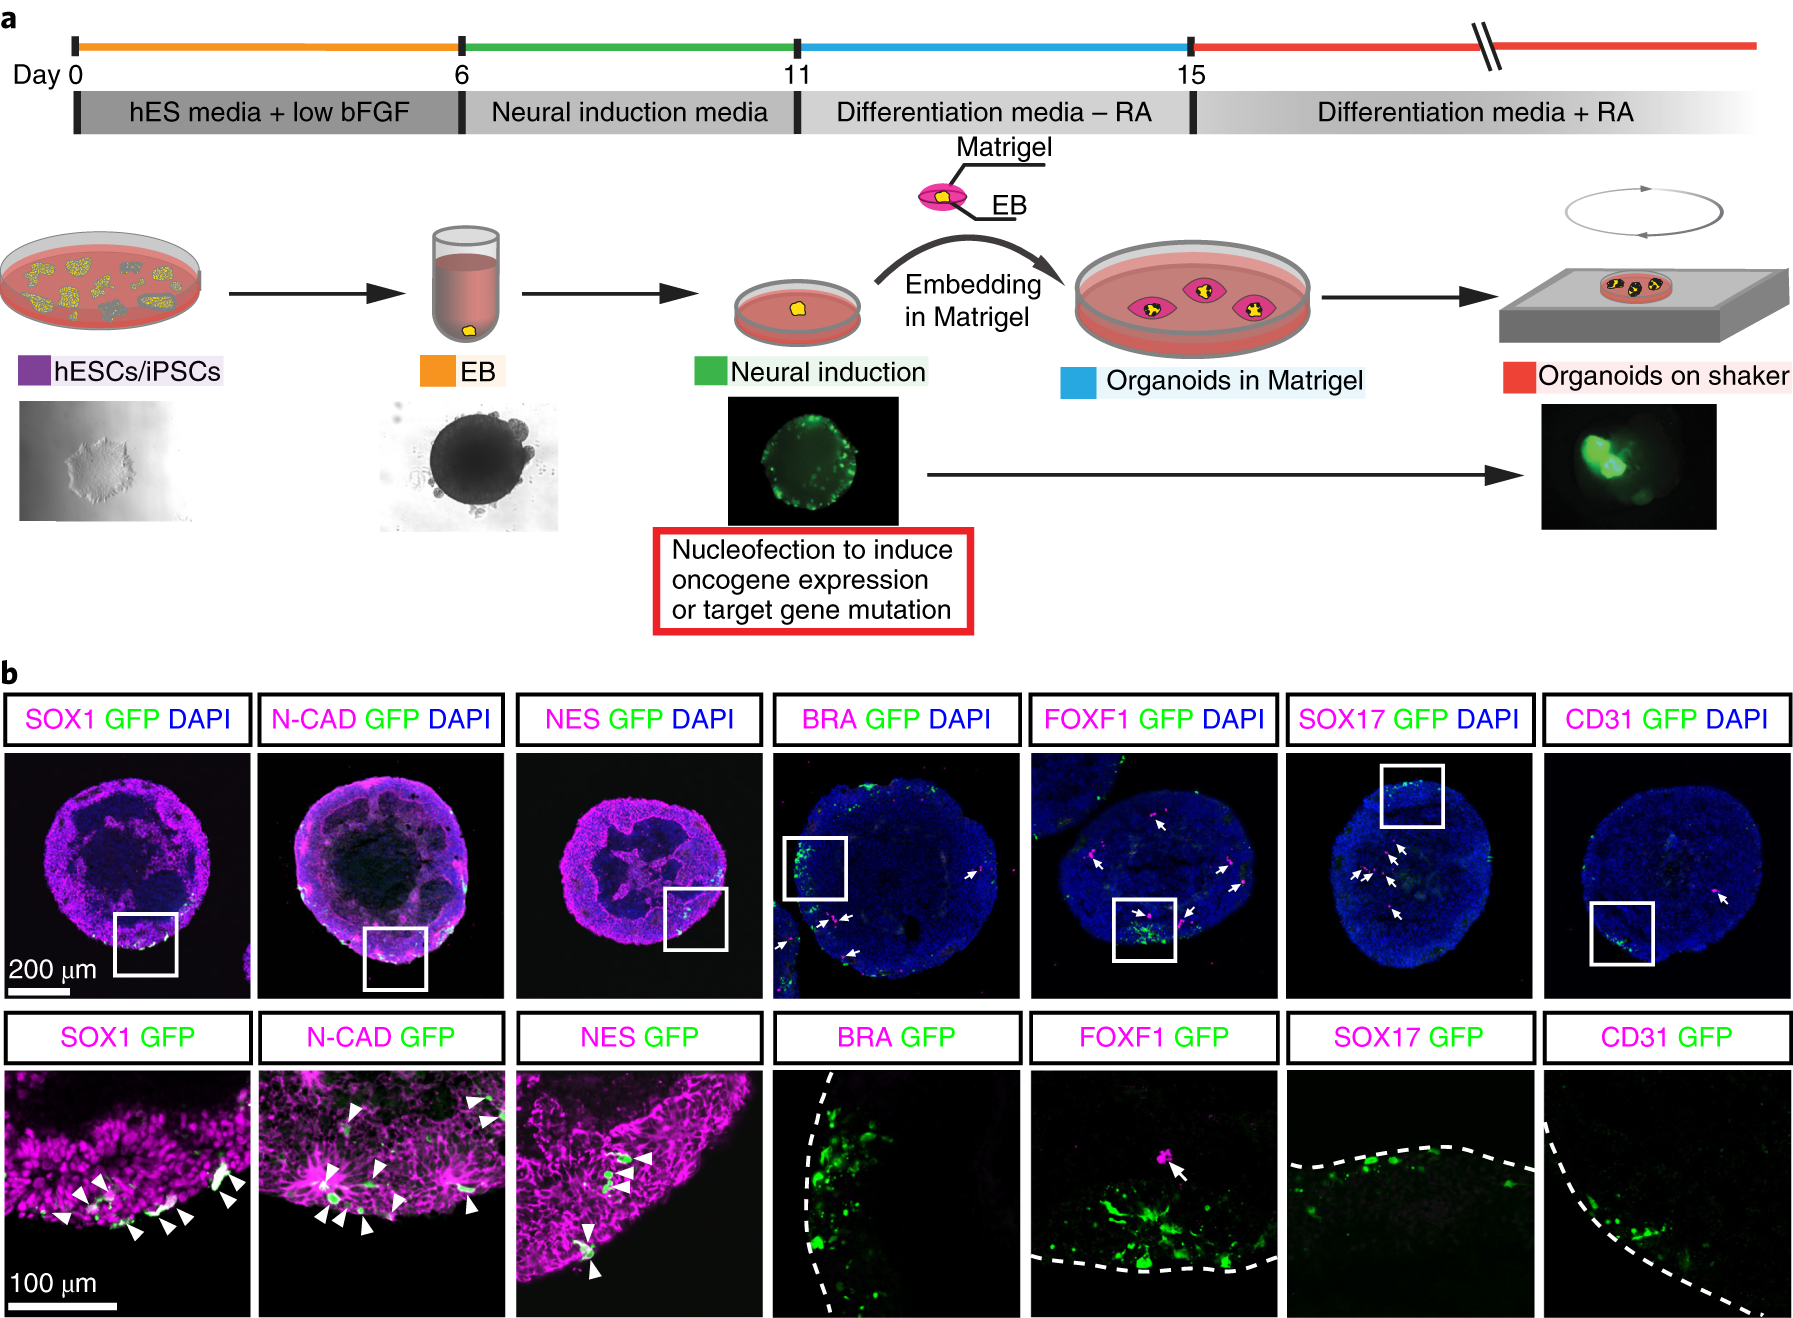 Introducing genome-editing constructs into neural stem/precursor cells of cerebral organoids.